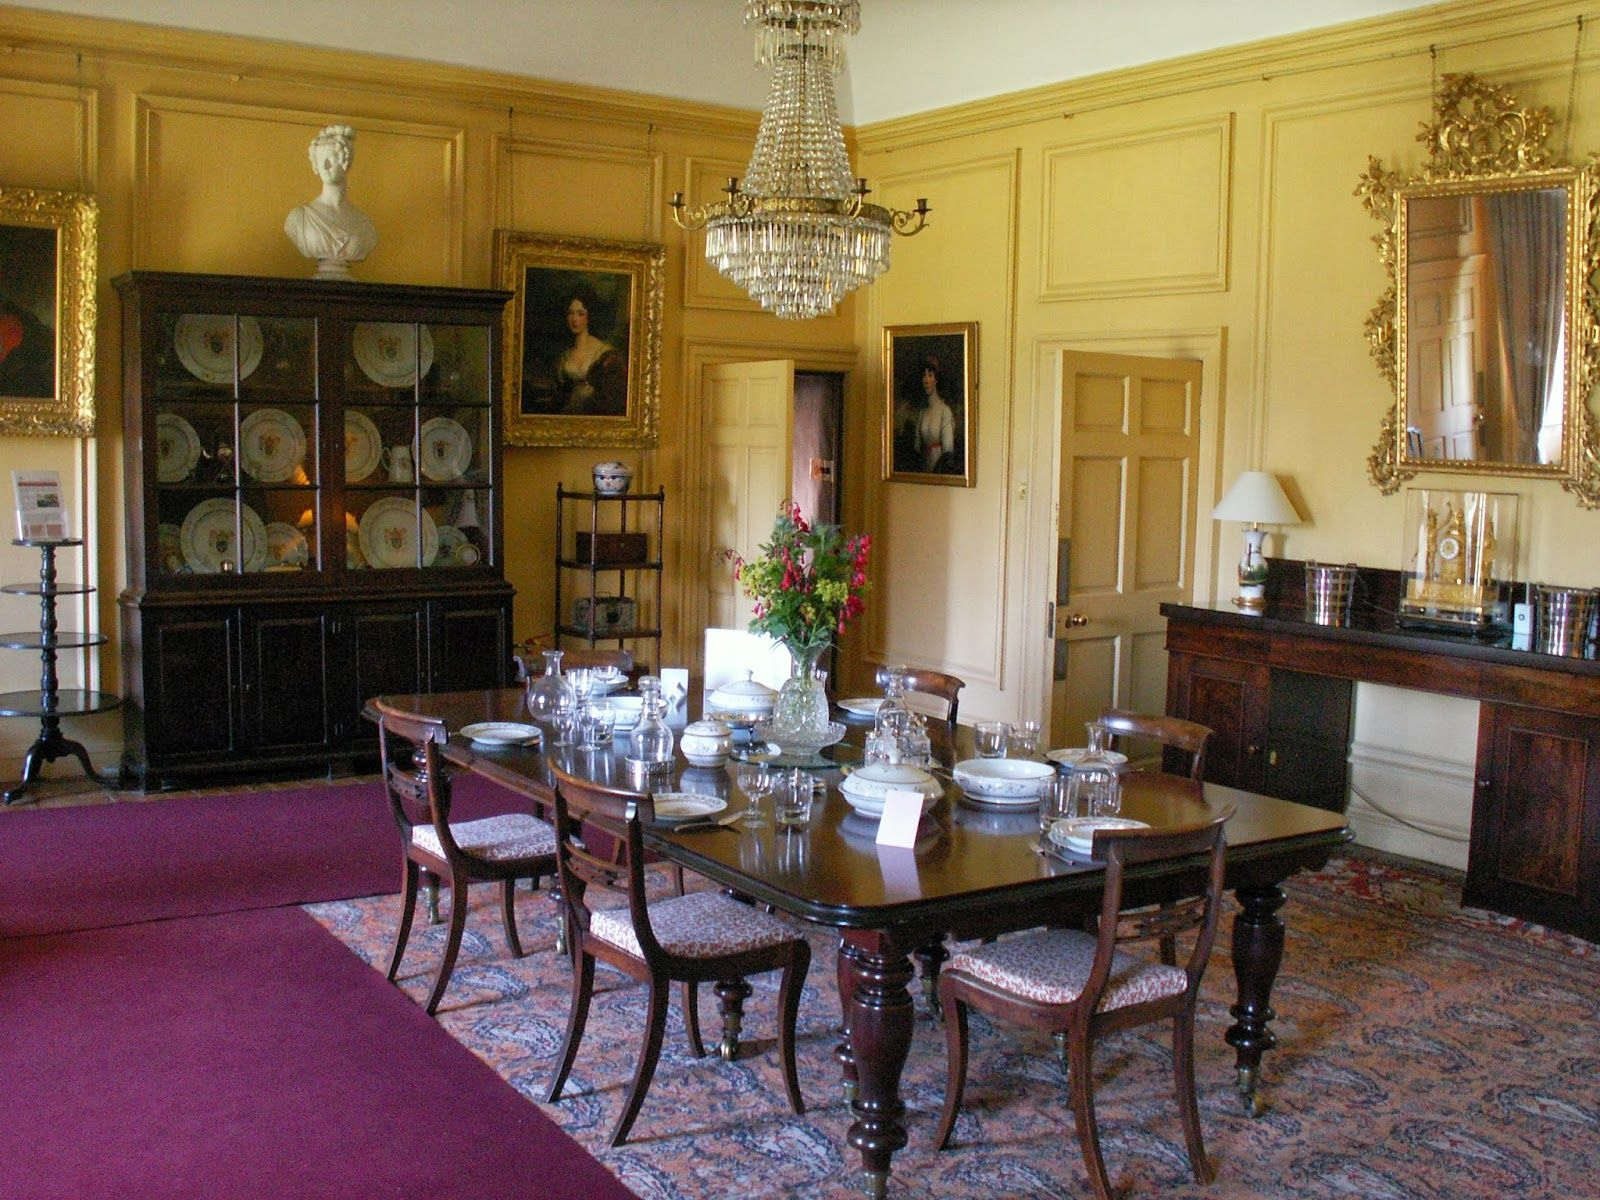 cubo et excubo: castle fraser (2) | antique interiors | pinterest